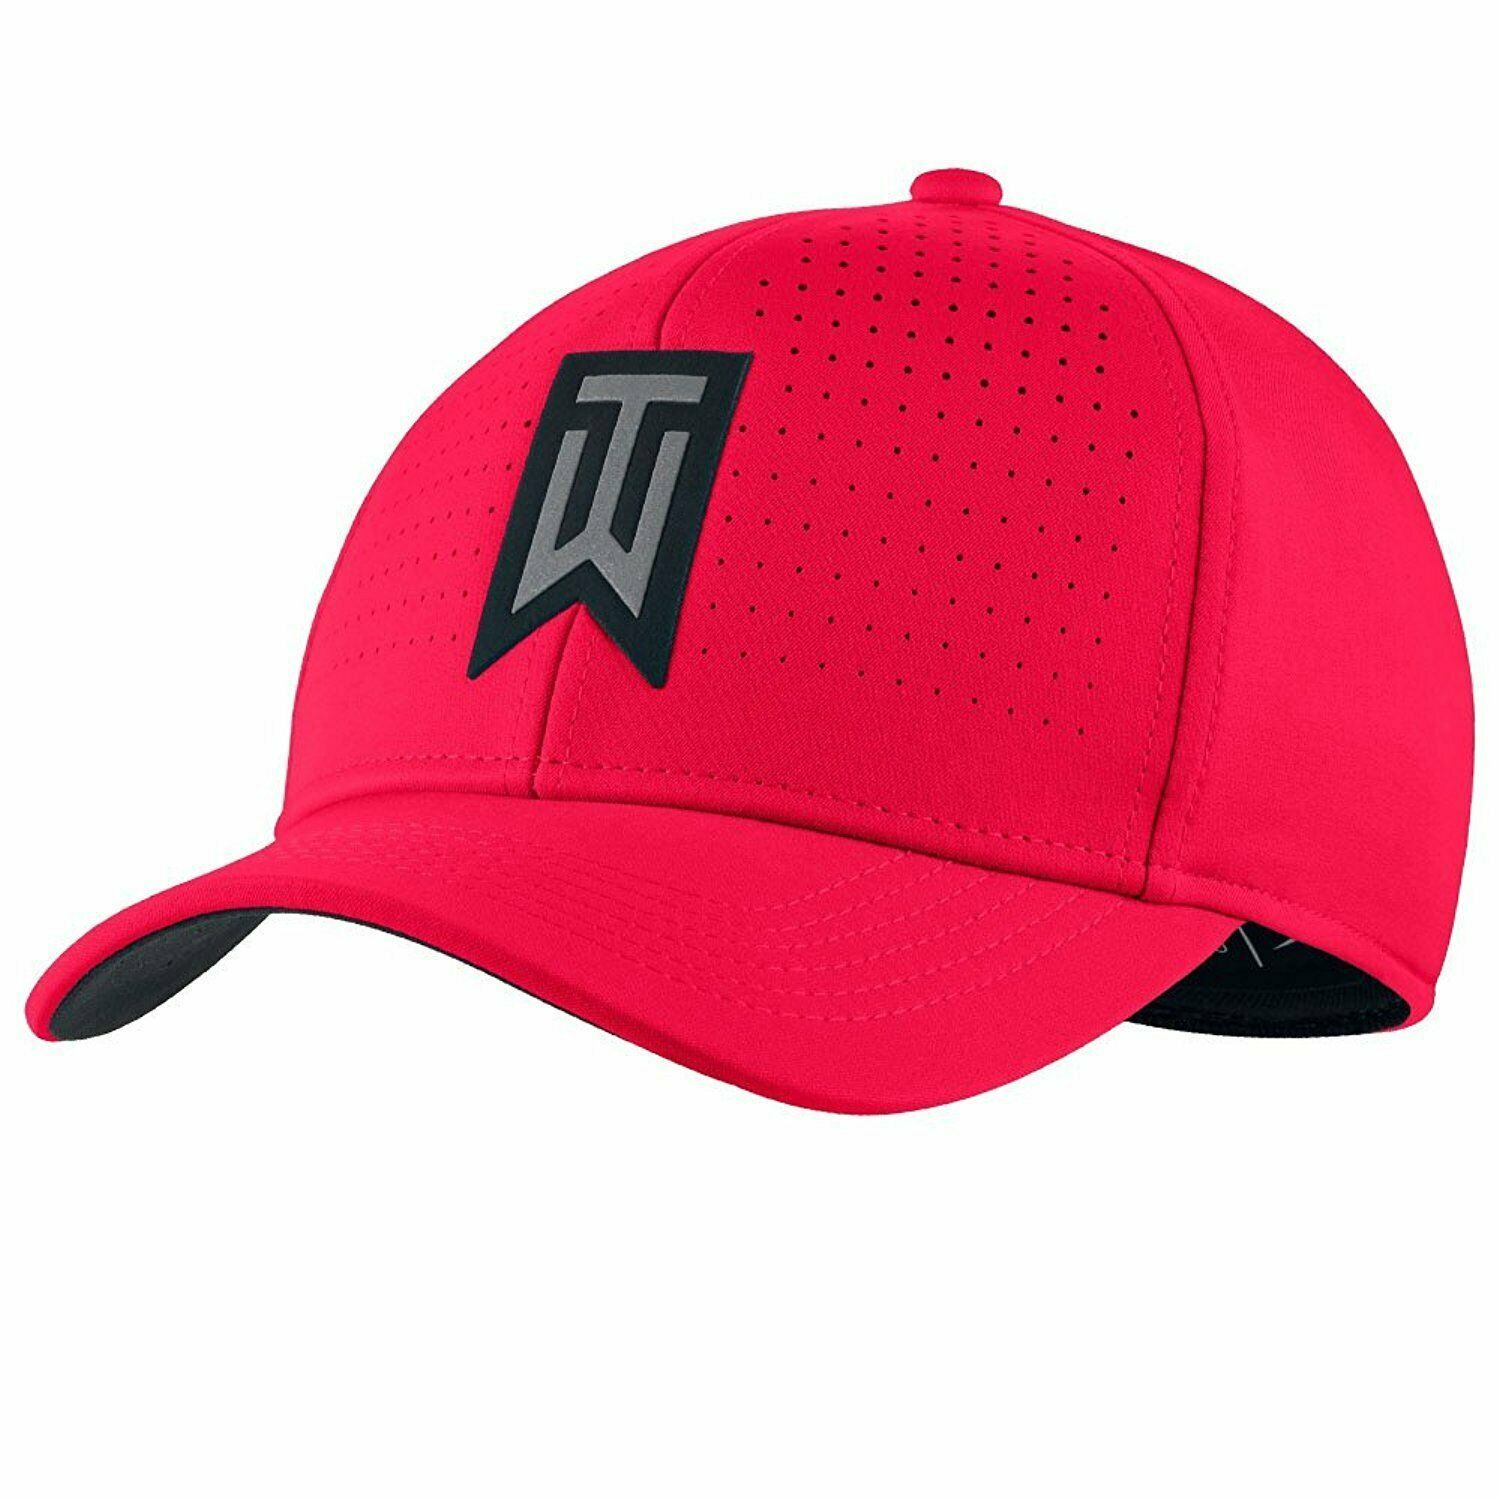 NEW! Nike Golf Tiger Woods TW AeroBill Classic99 Golf Hat-Fuchsia L/XL 845579